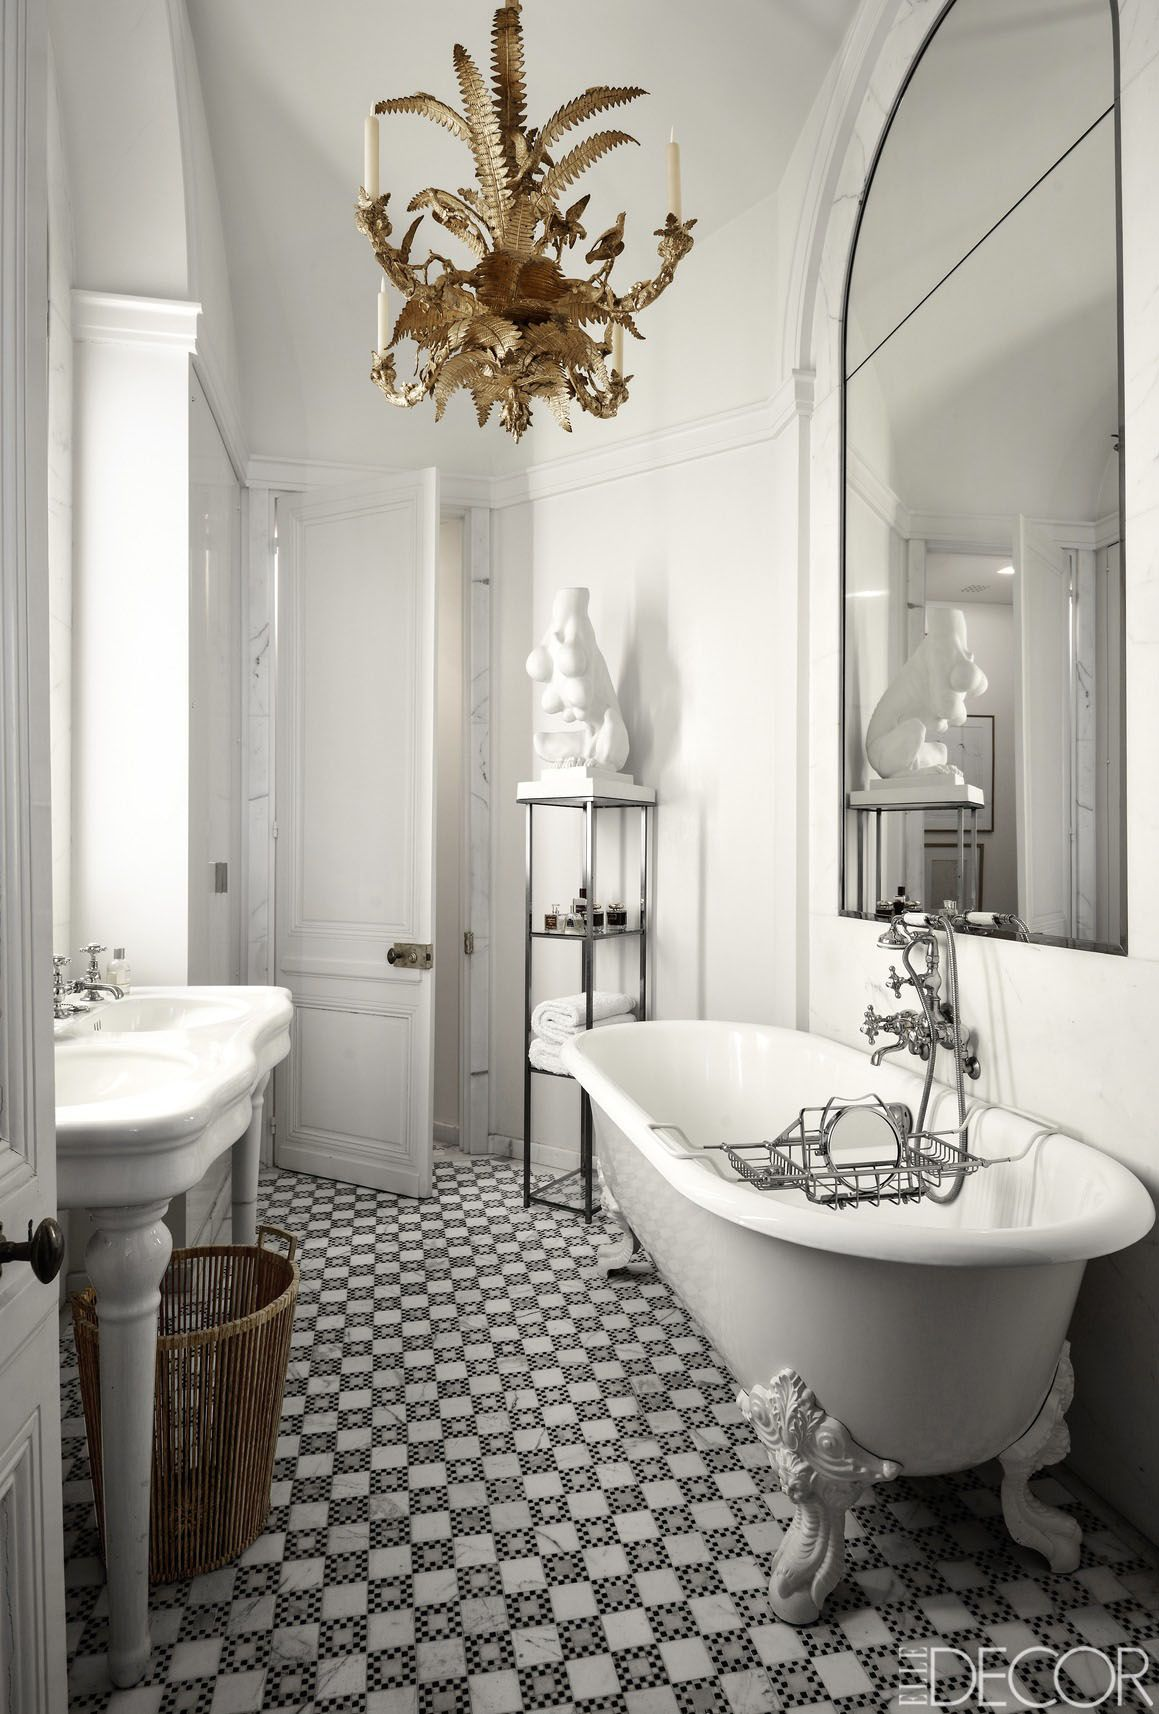 Vintage Black And White Bathroom Ideas Captivating 30 Black And White Bathroom Decor & Design Ideas Design Inspiration